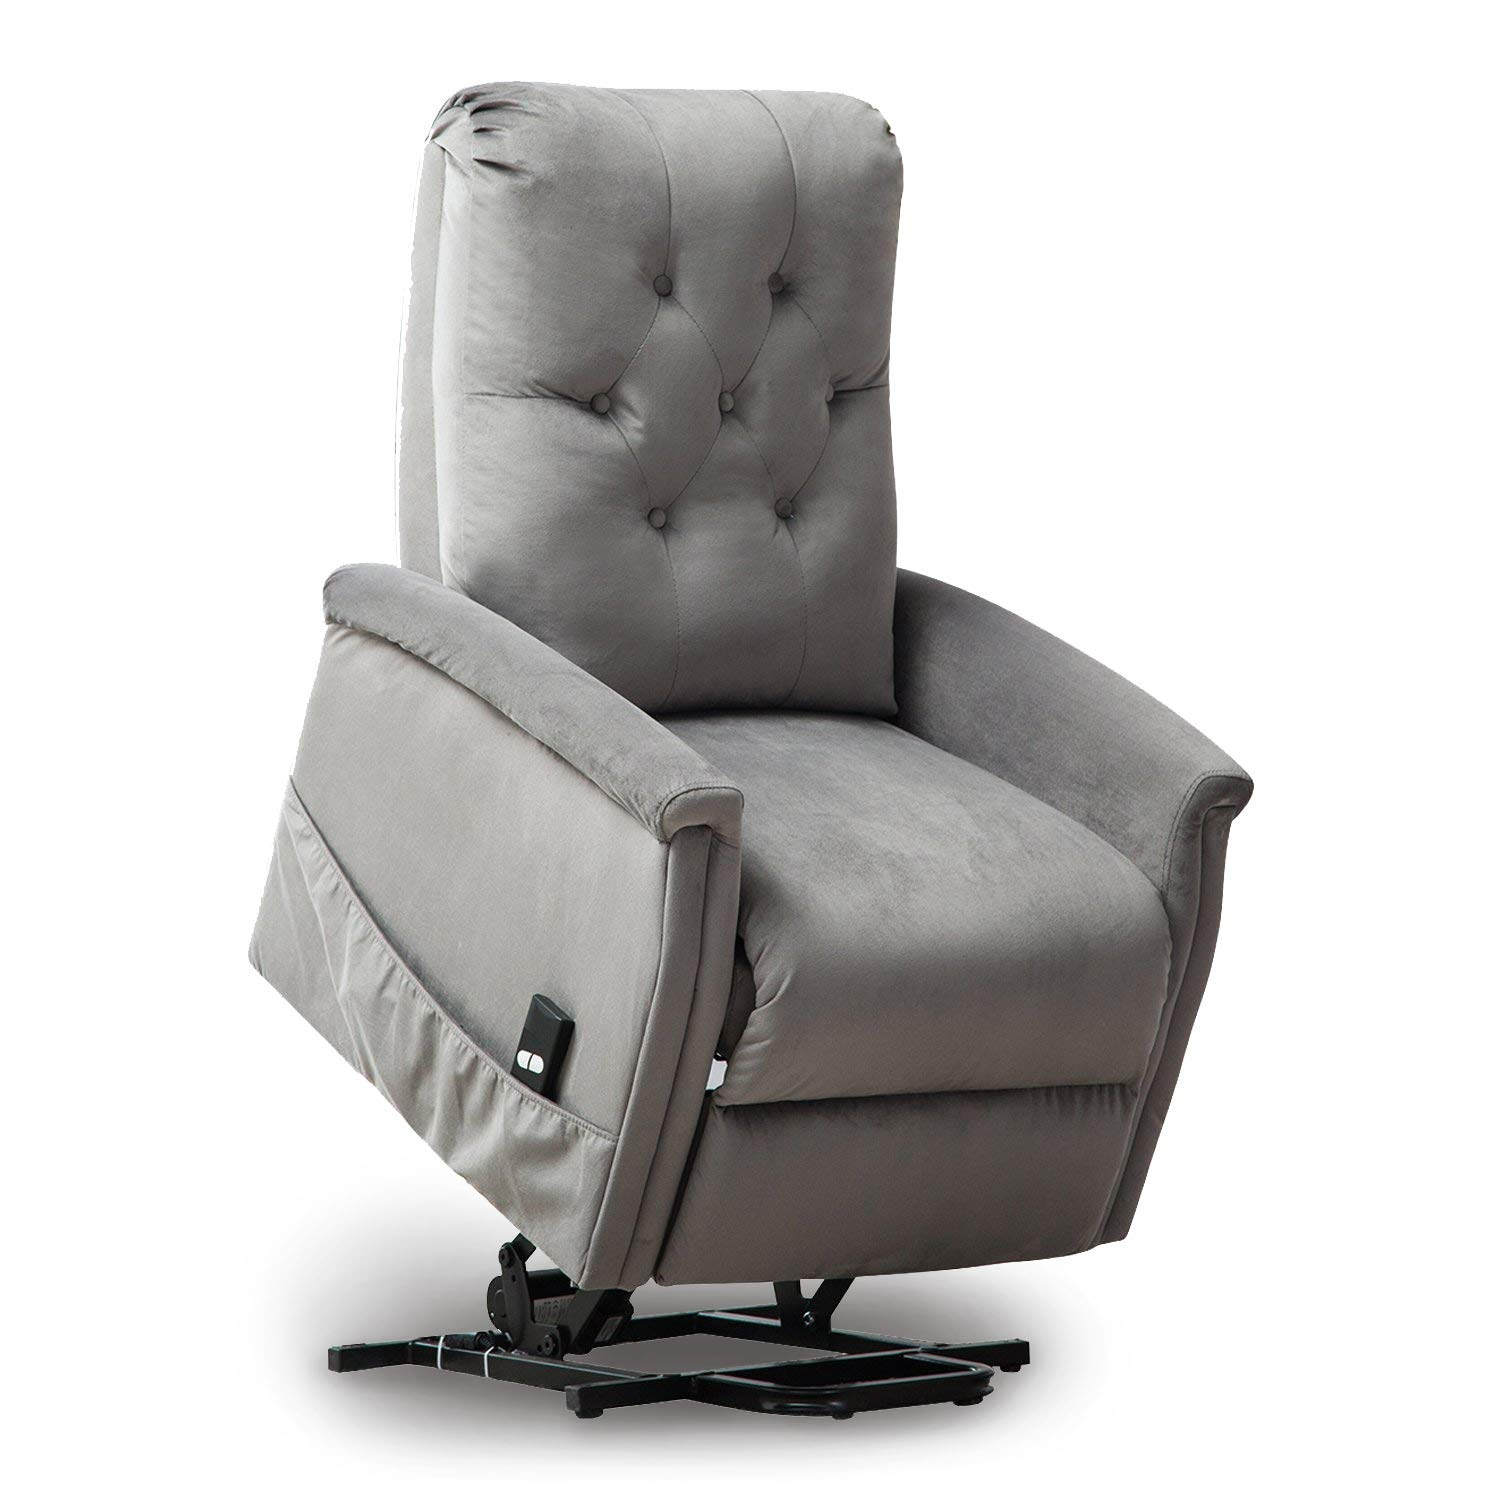 Amazon com bonzy power lift recliner chair for elderly living room chair sofa seat with remote control pocket light gray kitchen dining